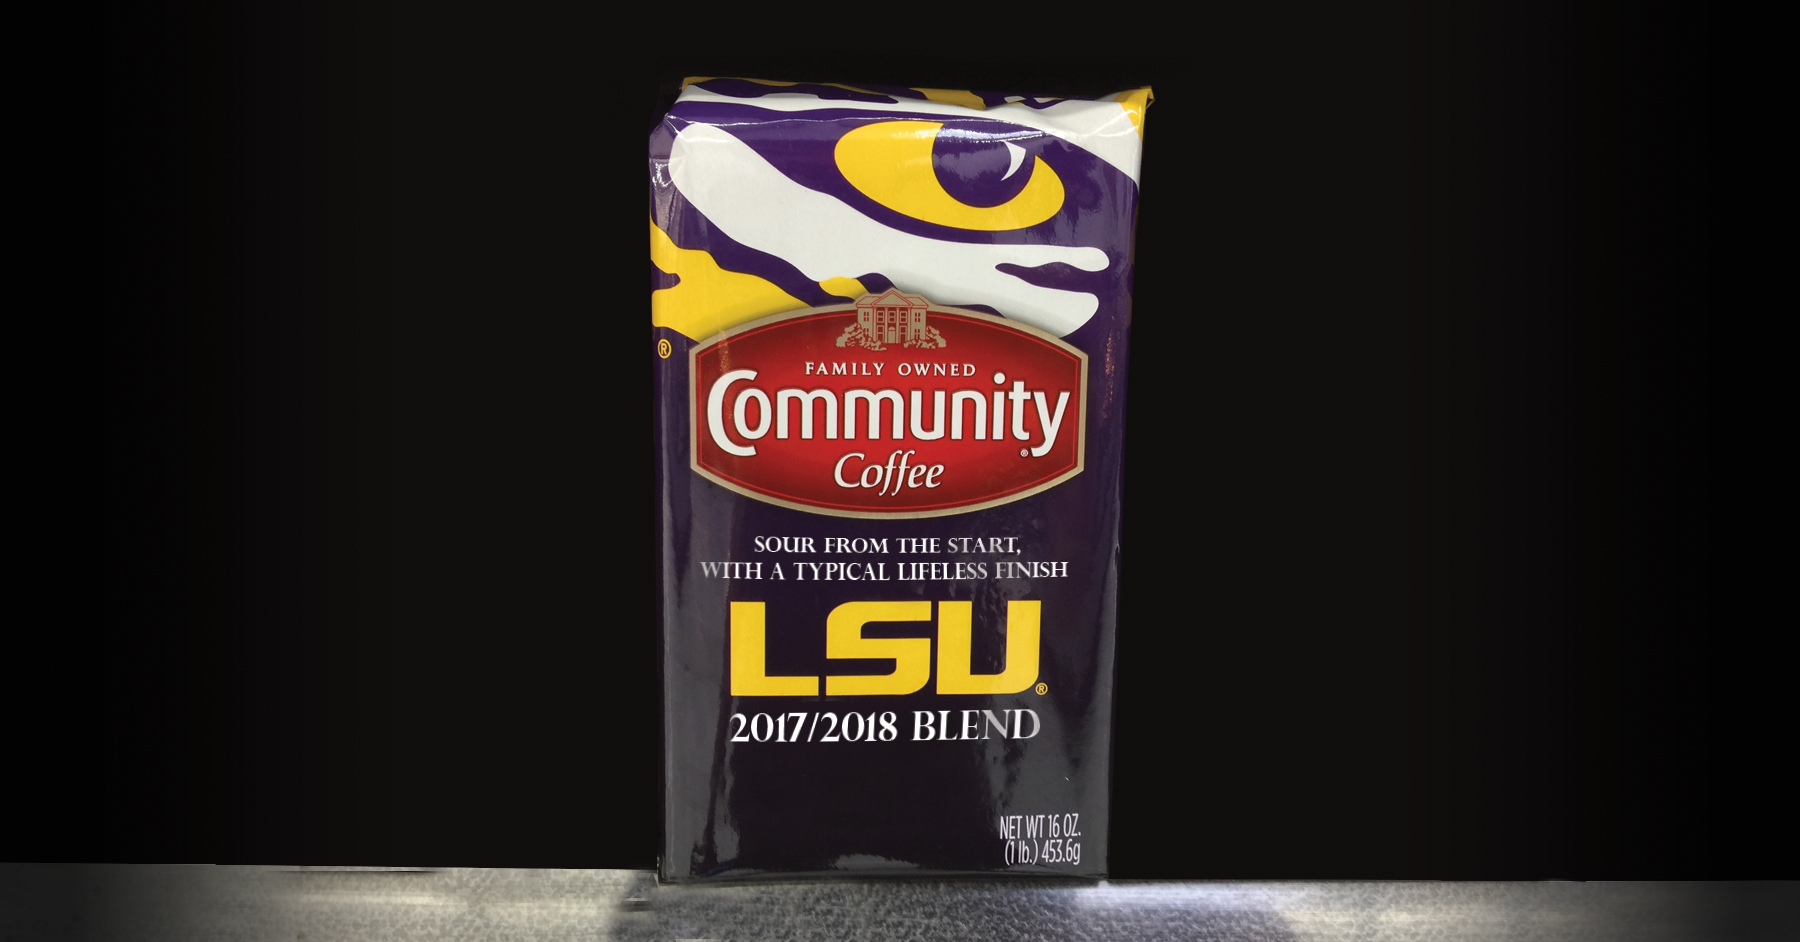 Lsu College Of Business - The Best Business Of 2018